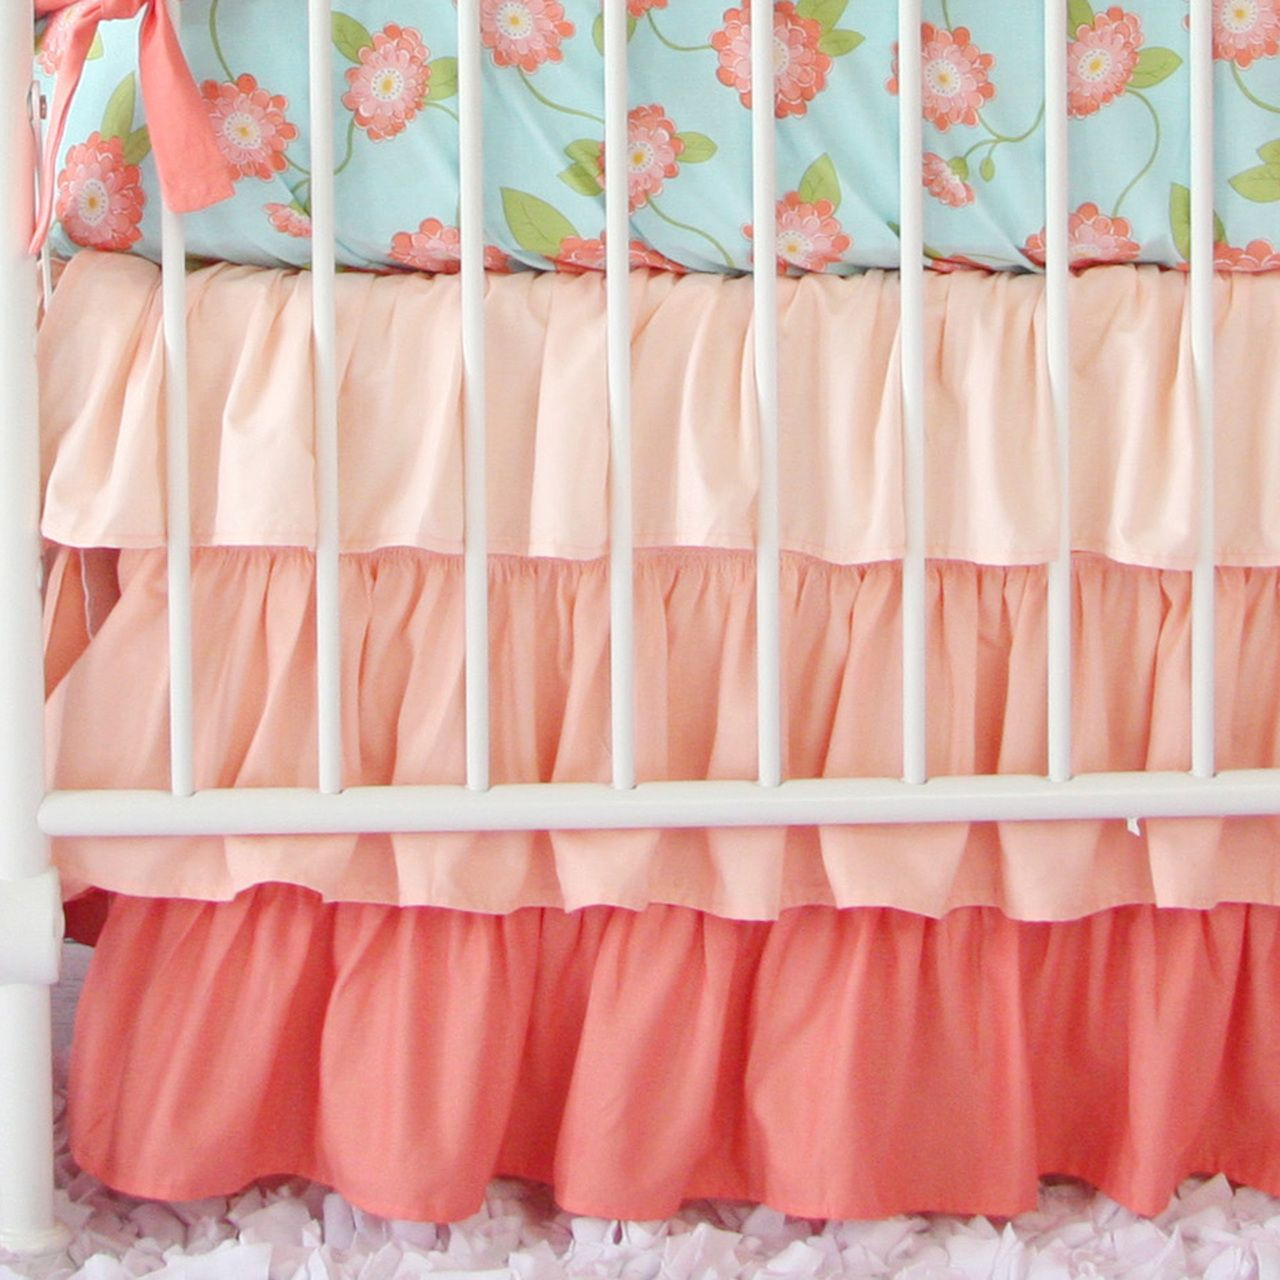 coral tiered ruffle bed skirt also has ruffle shams to match